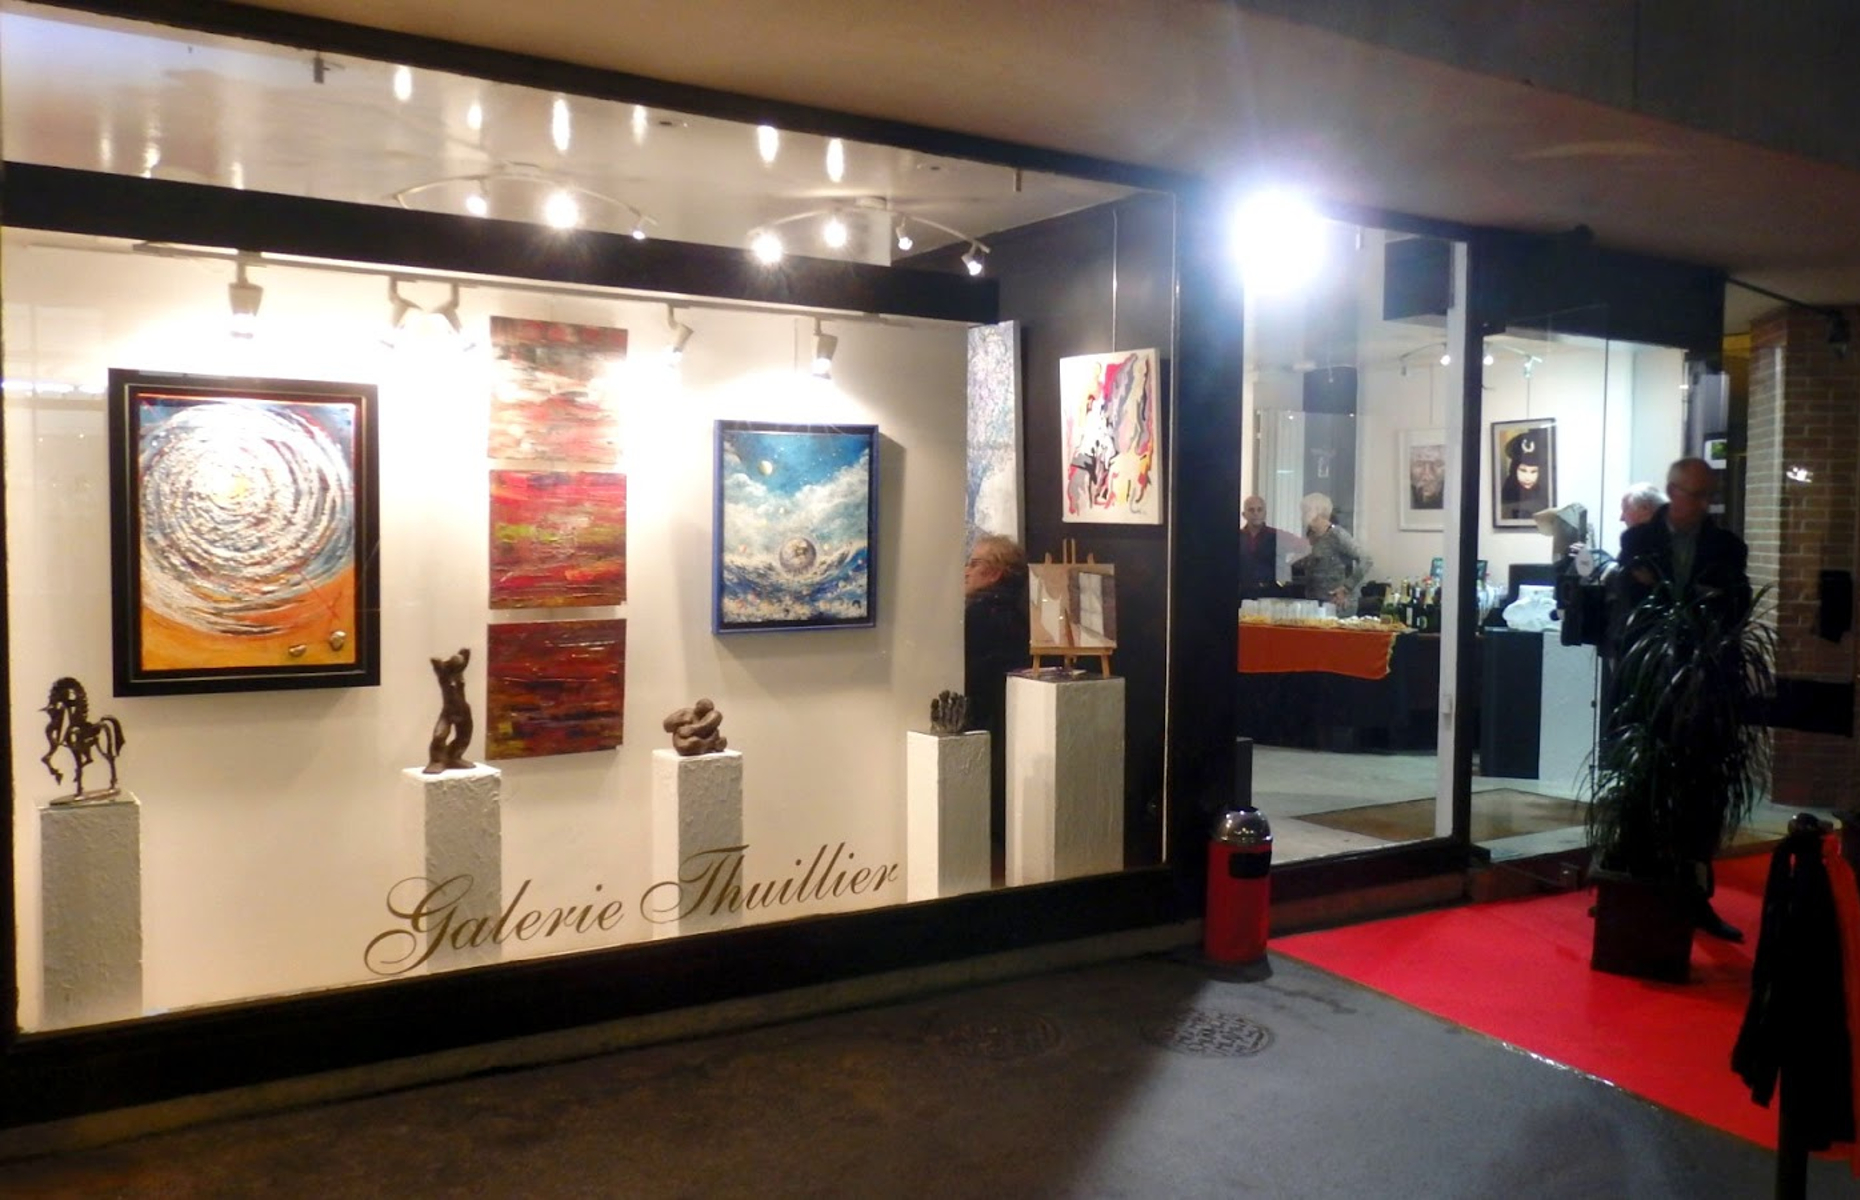 galerie-thuillier-paris-mecenavie-expositions-salons-art-contemporain